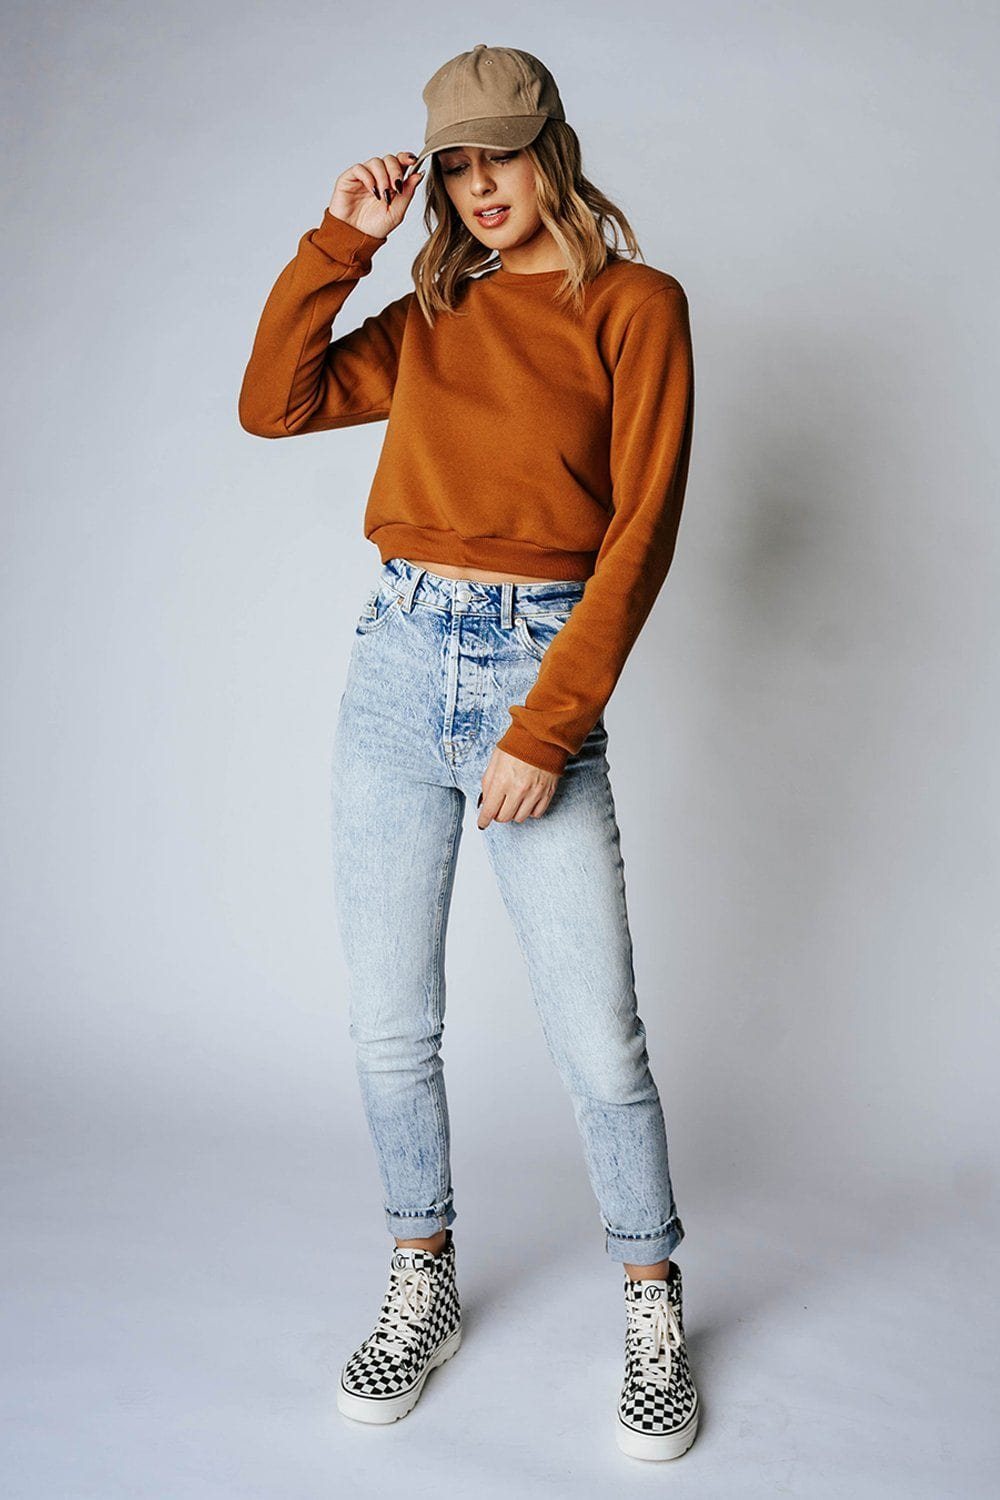 Free People Zuri Mom Jeans in Lived in Blue, cladandcloth, Free People.